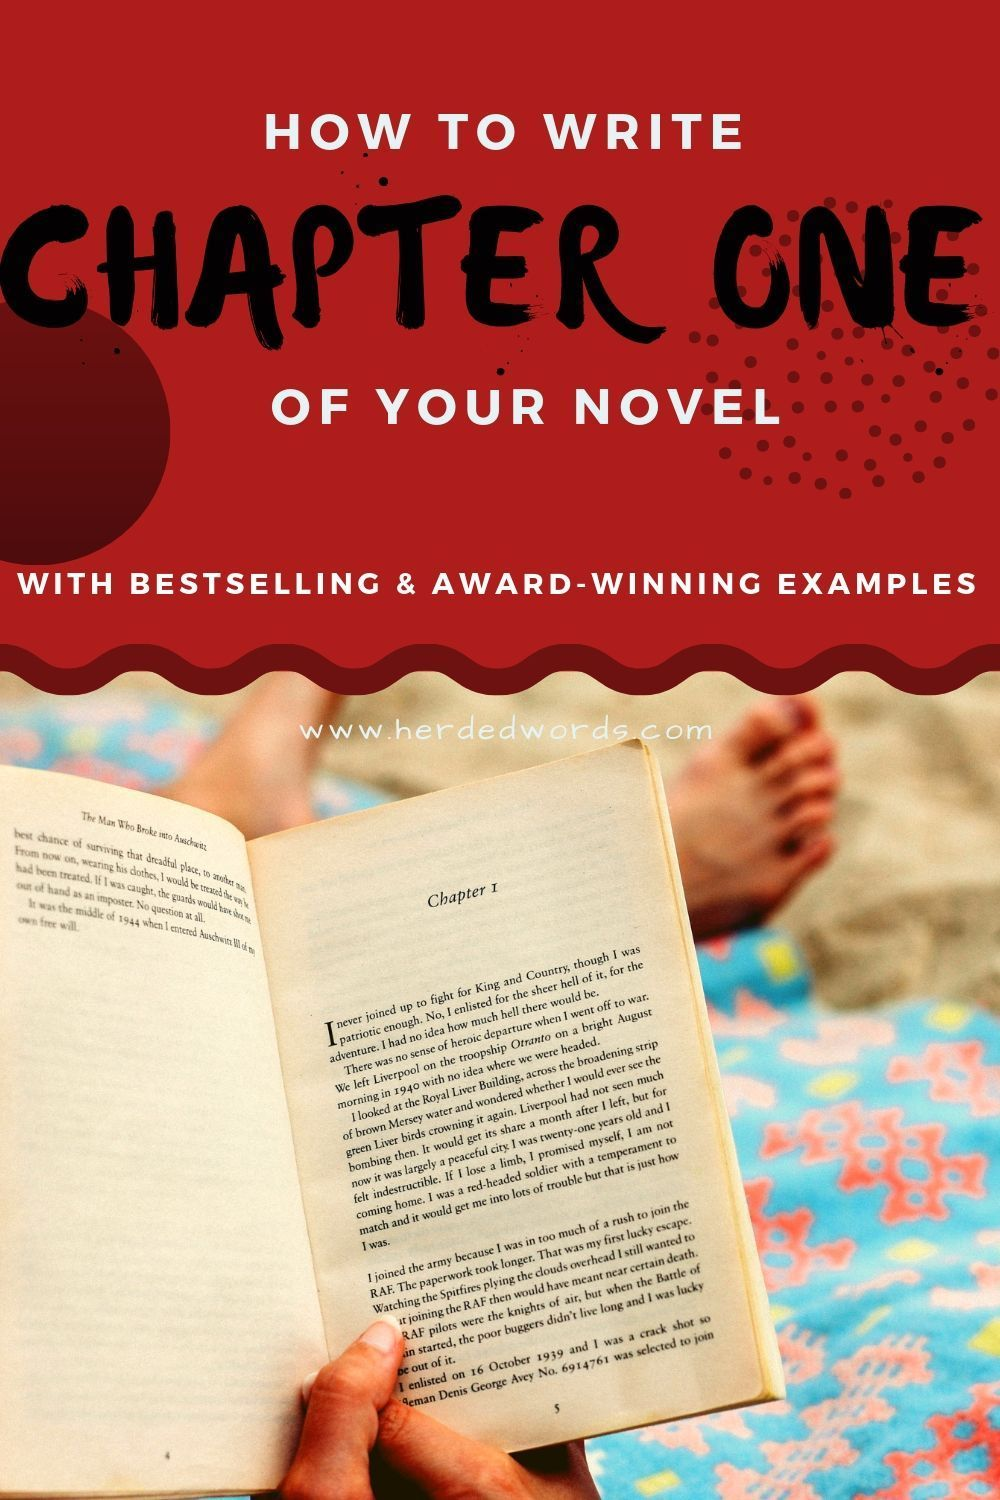 How to Write the First Chapter [the 5 Essential Elements